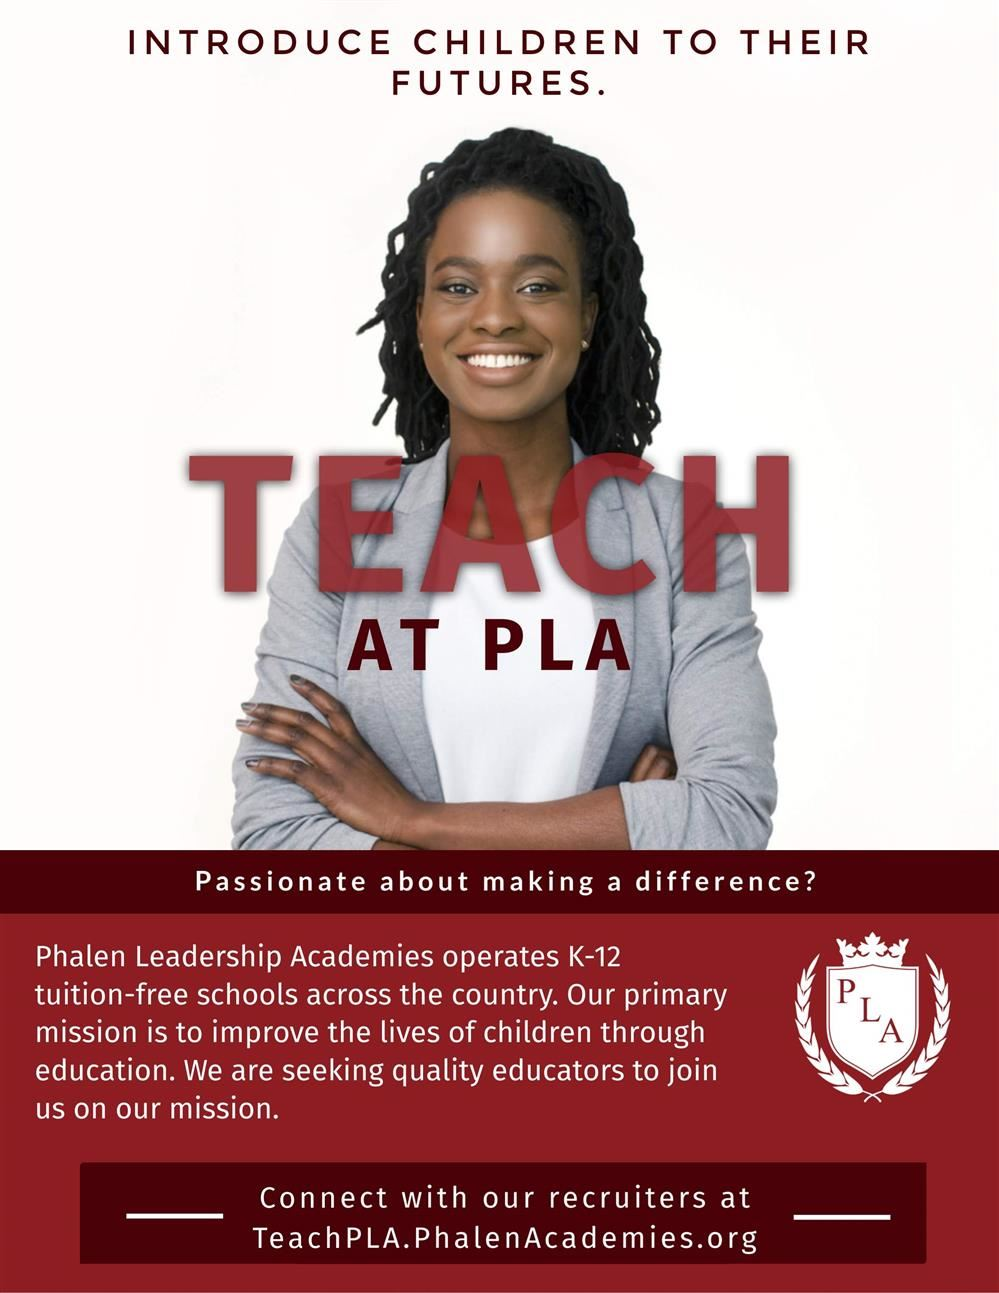 Teach at Phalen Leadership Academies